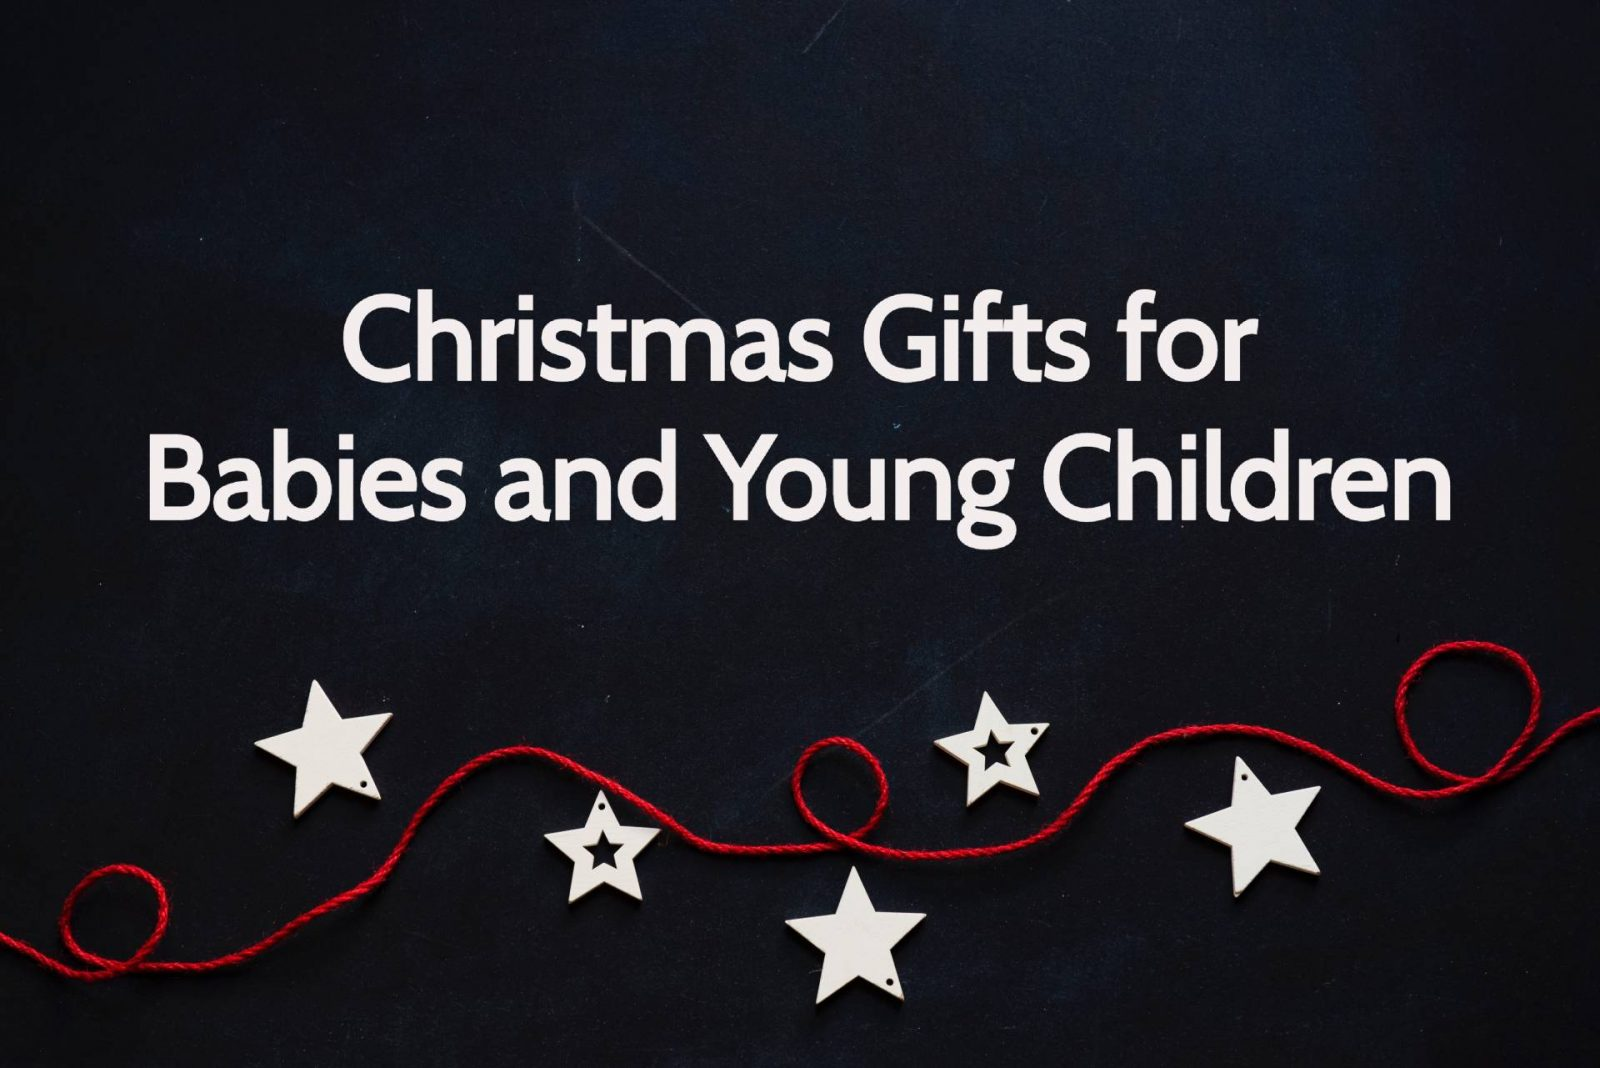 Christmas Gift Ideas for Babies and Younger Children